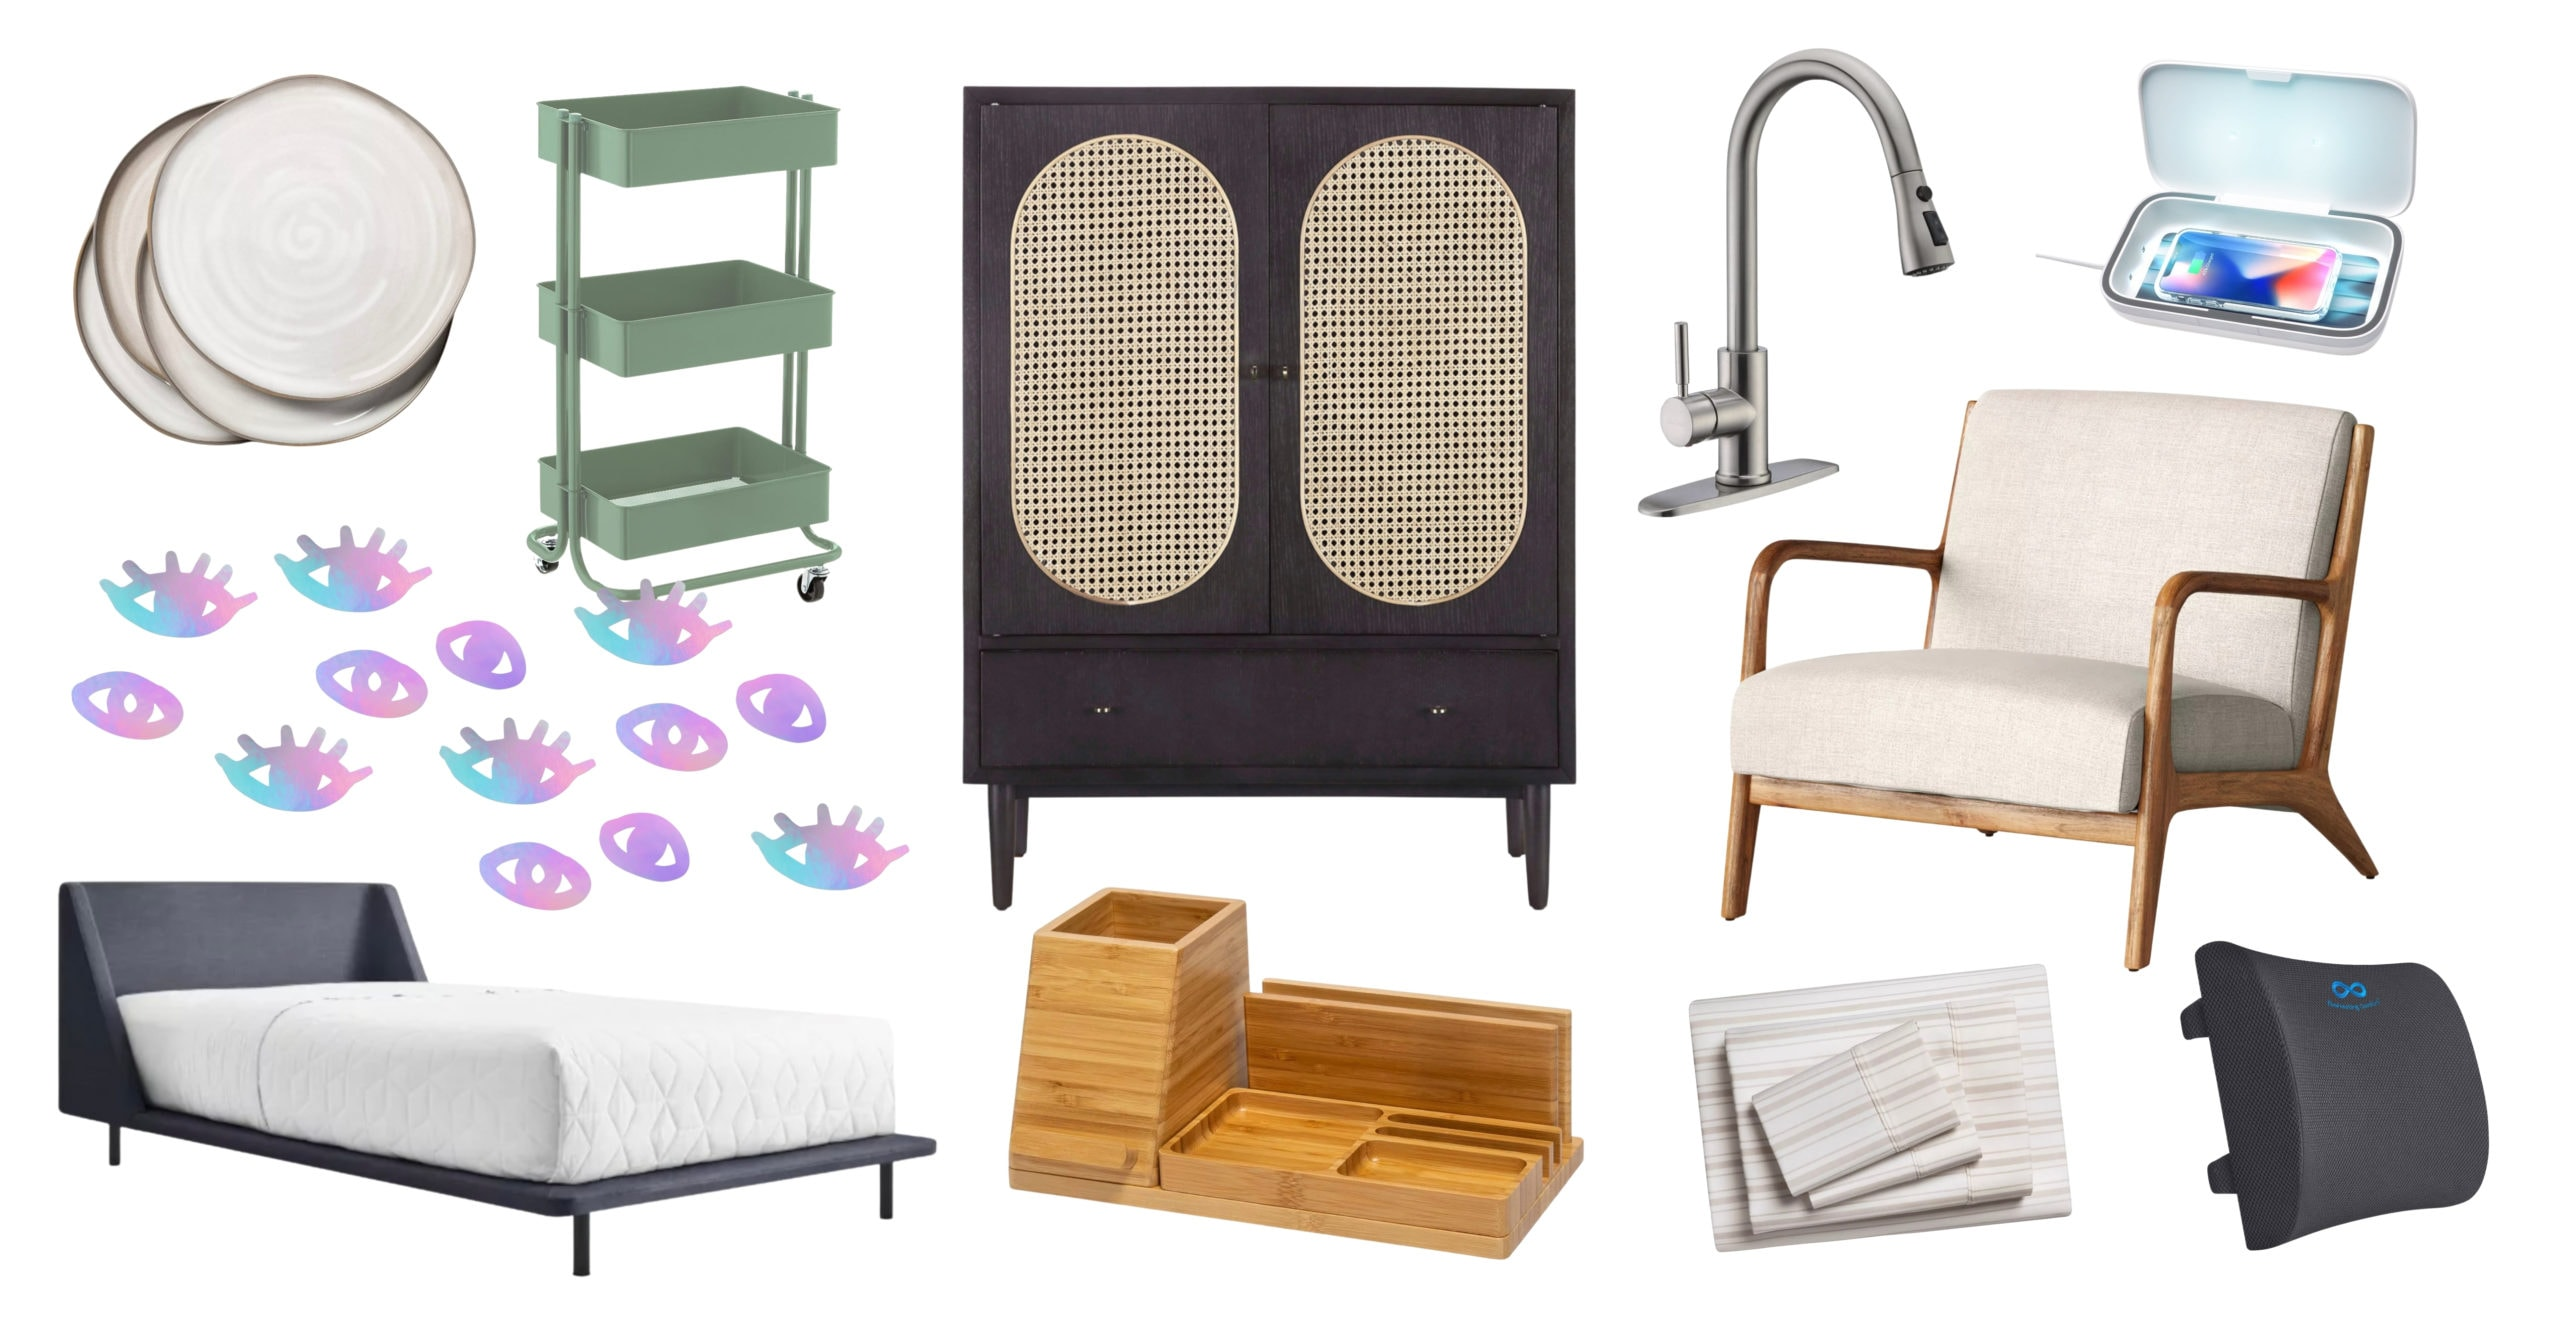 The 20 Most Clicked Products On Our Site In 2020 - Bobby Berk